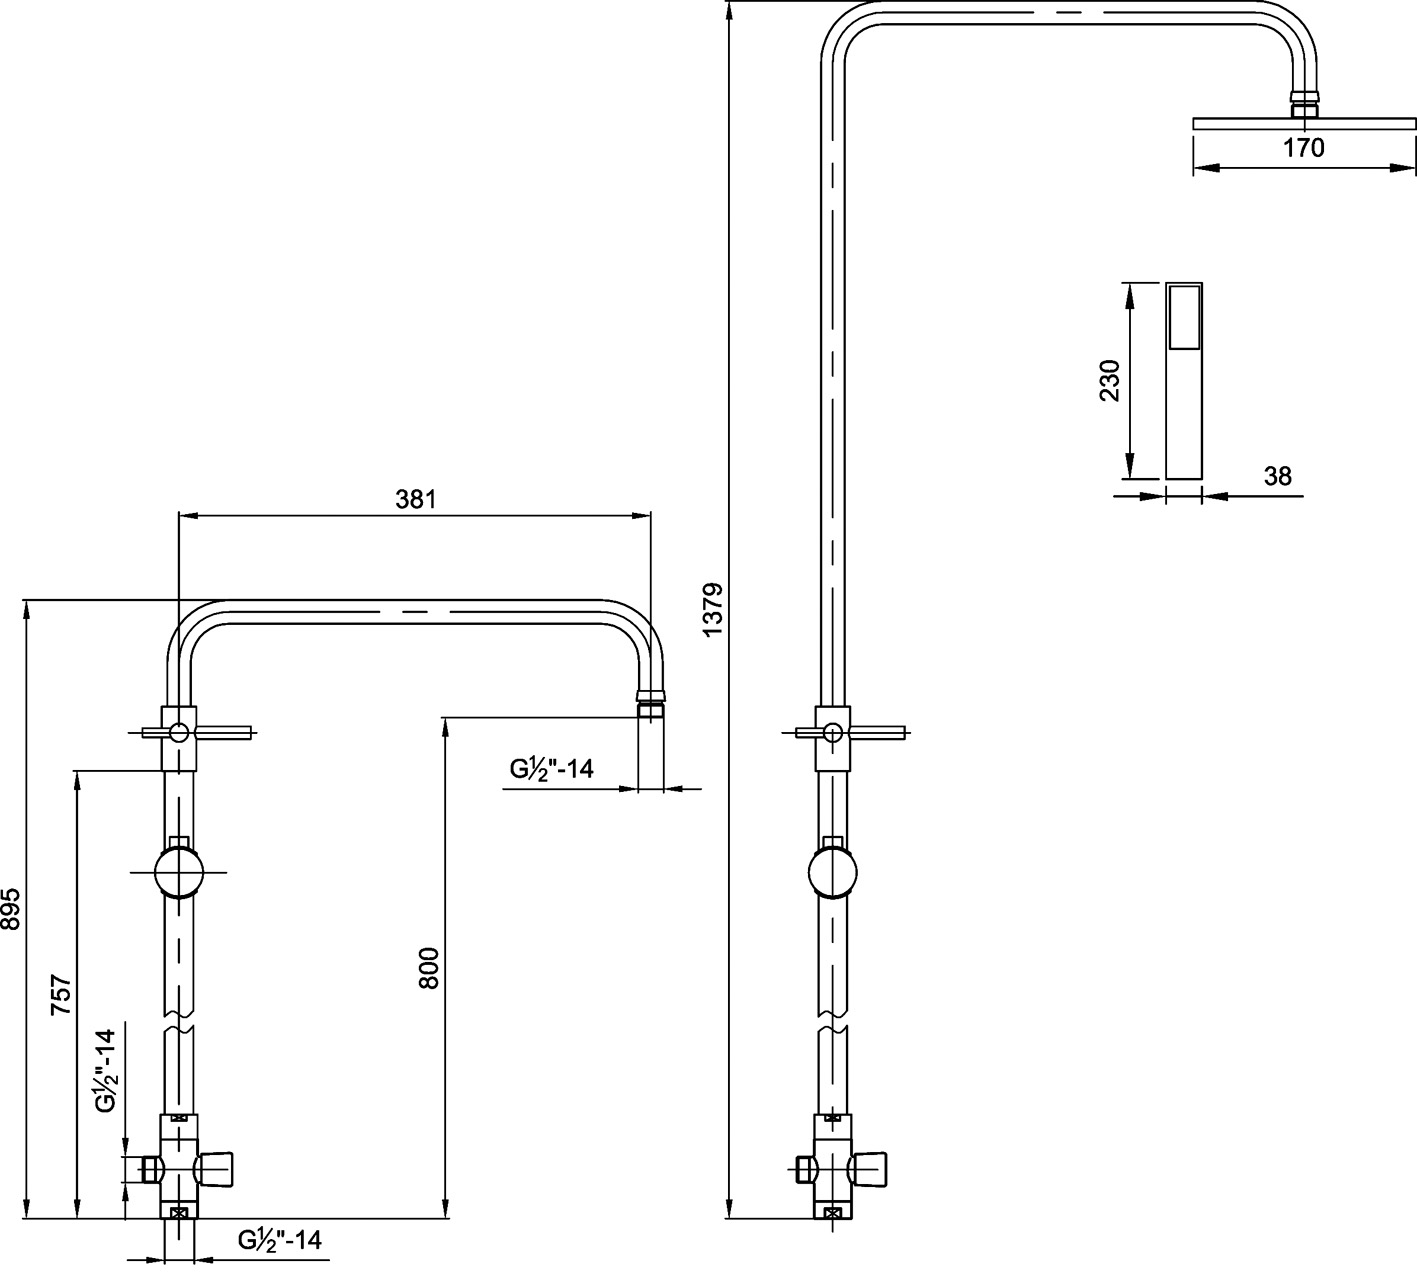 hight resolution of piping diagram for mixing valve